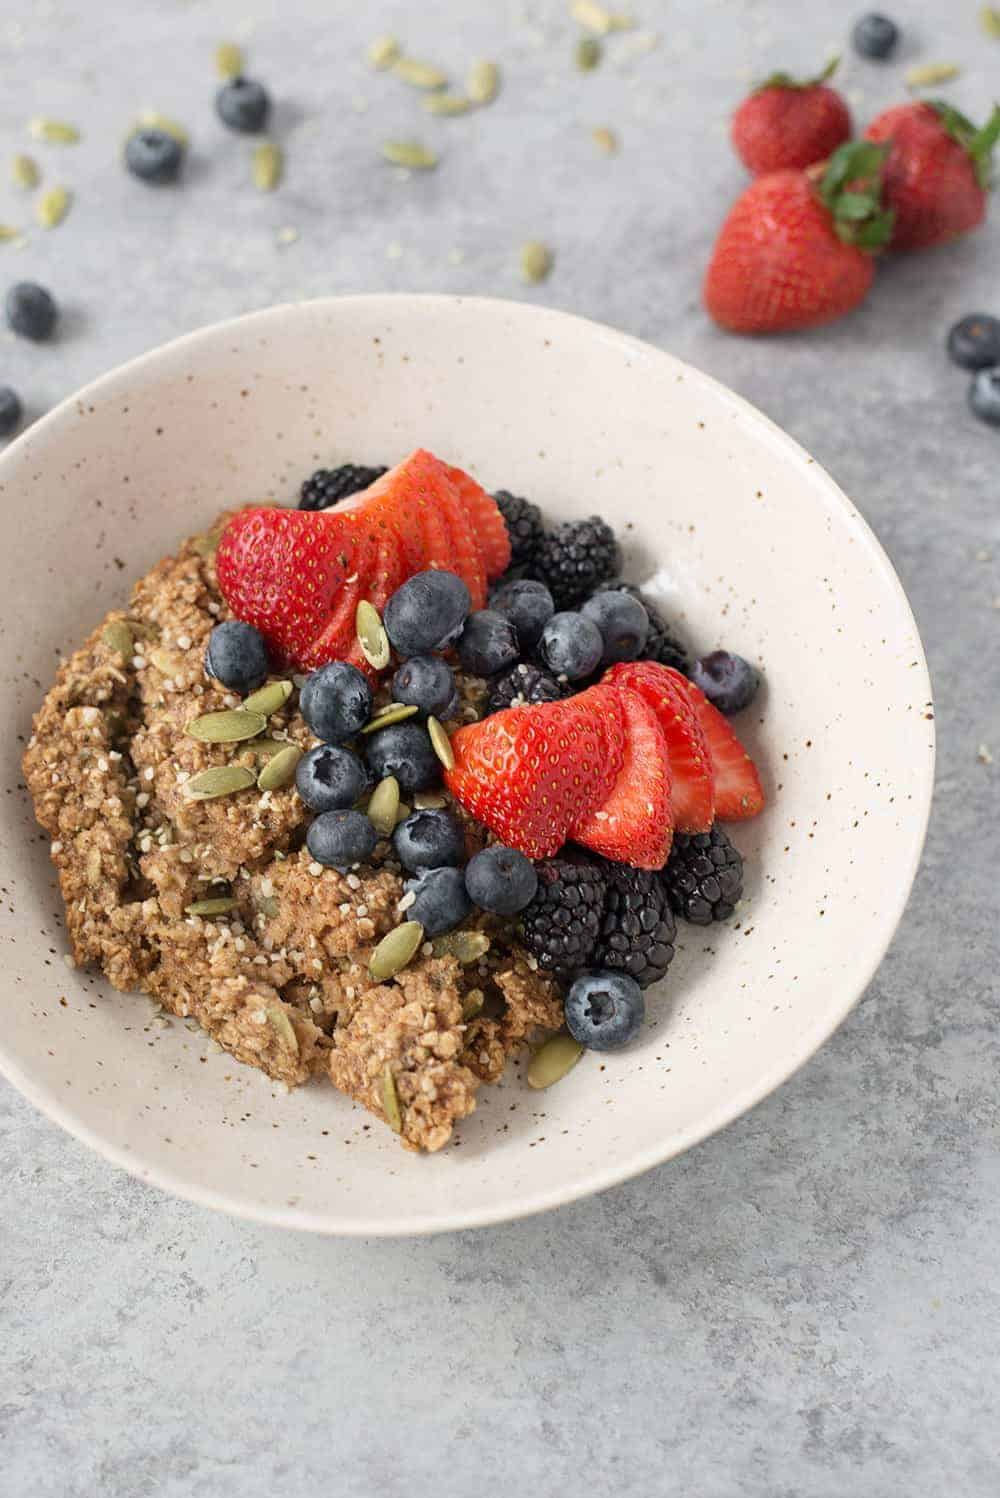 gluten-free baked oatmeal recipe bowl with berries